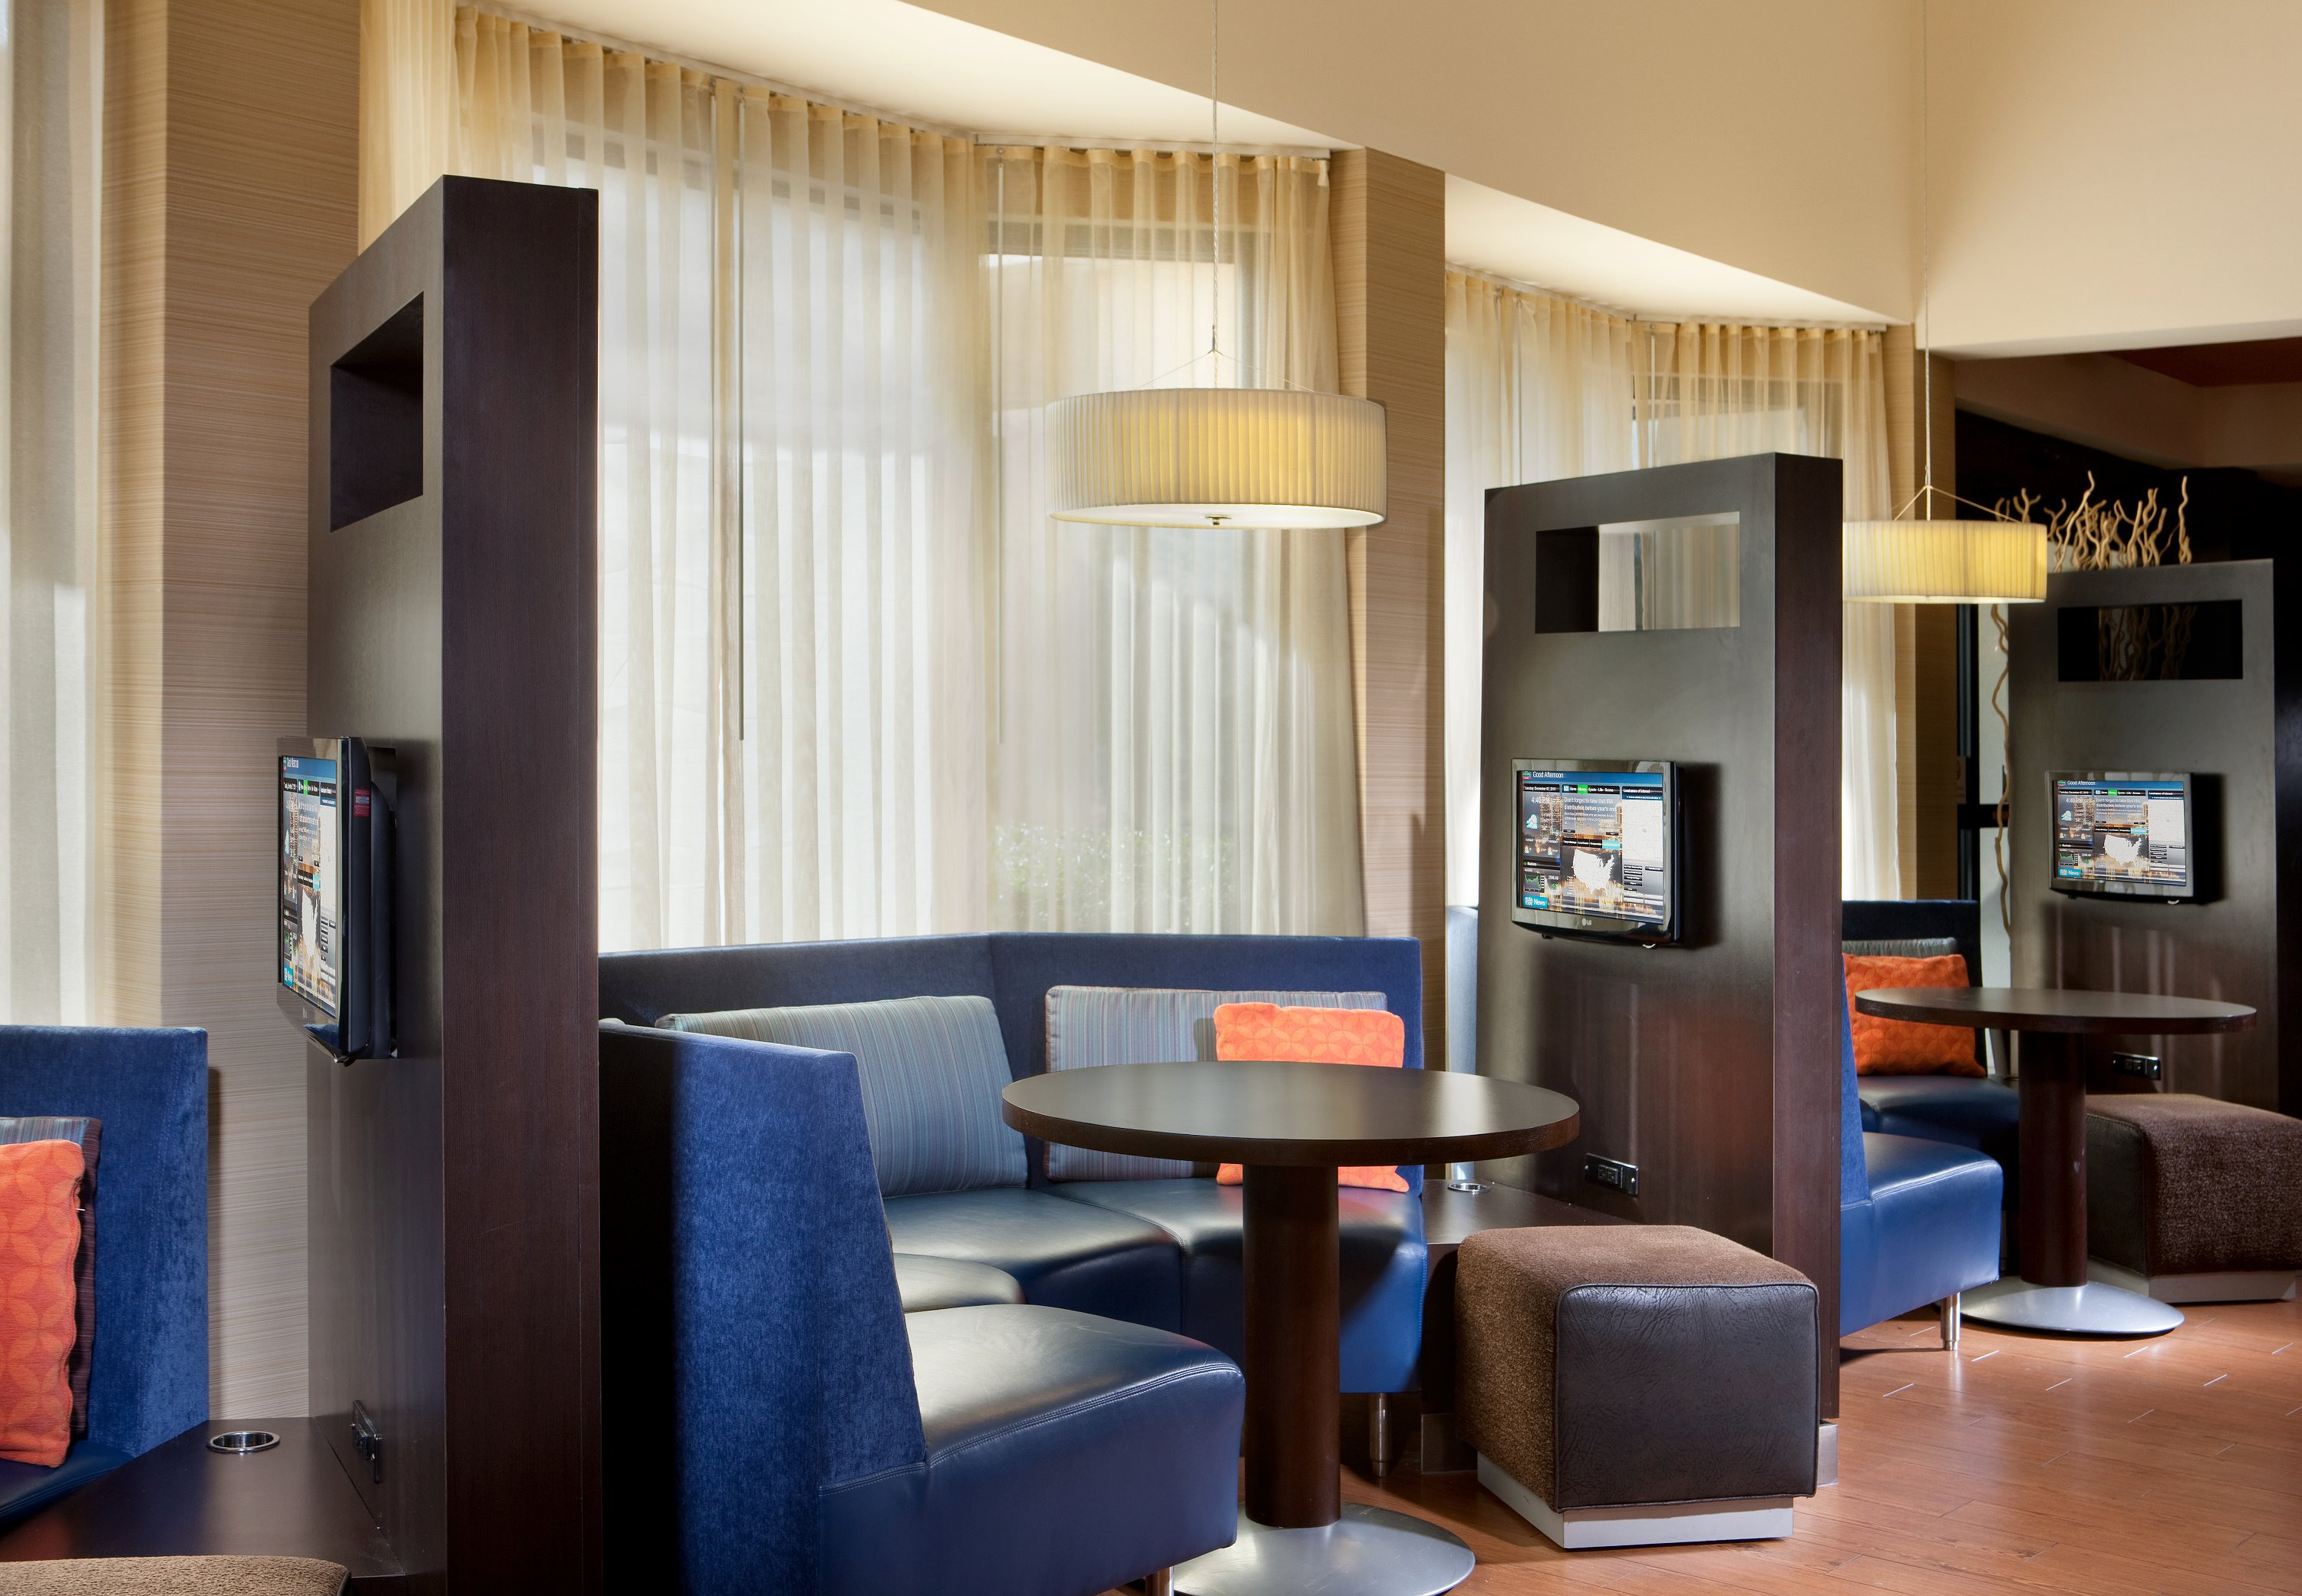 Courtyard by Marriott Fort Worth University Drive image 10